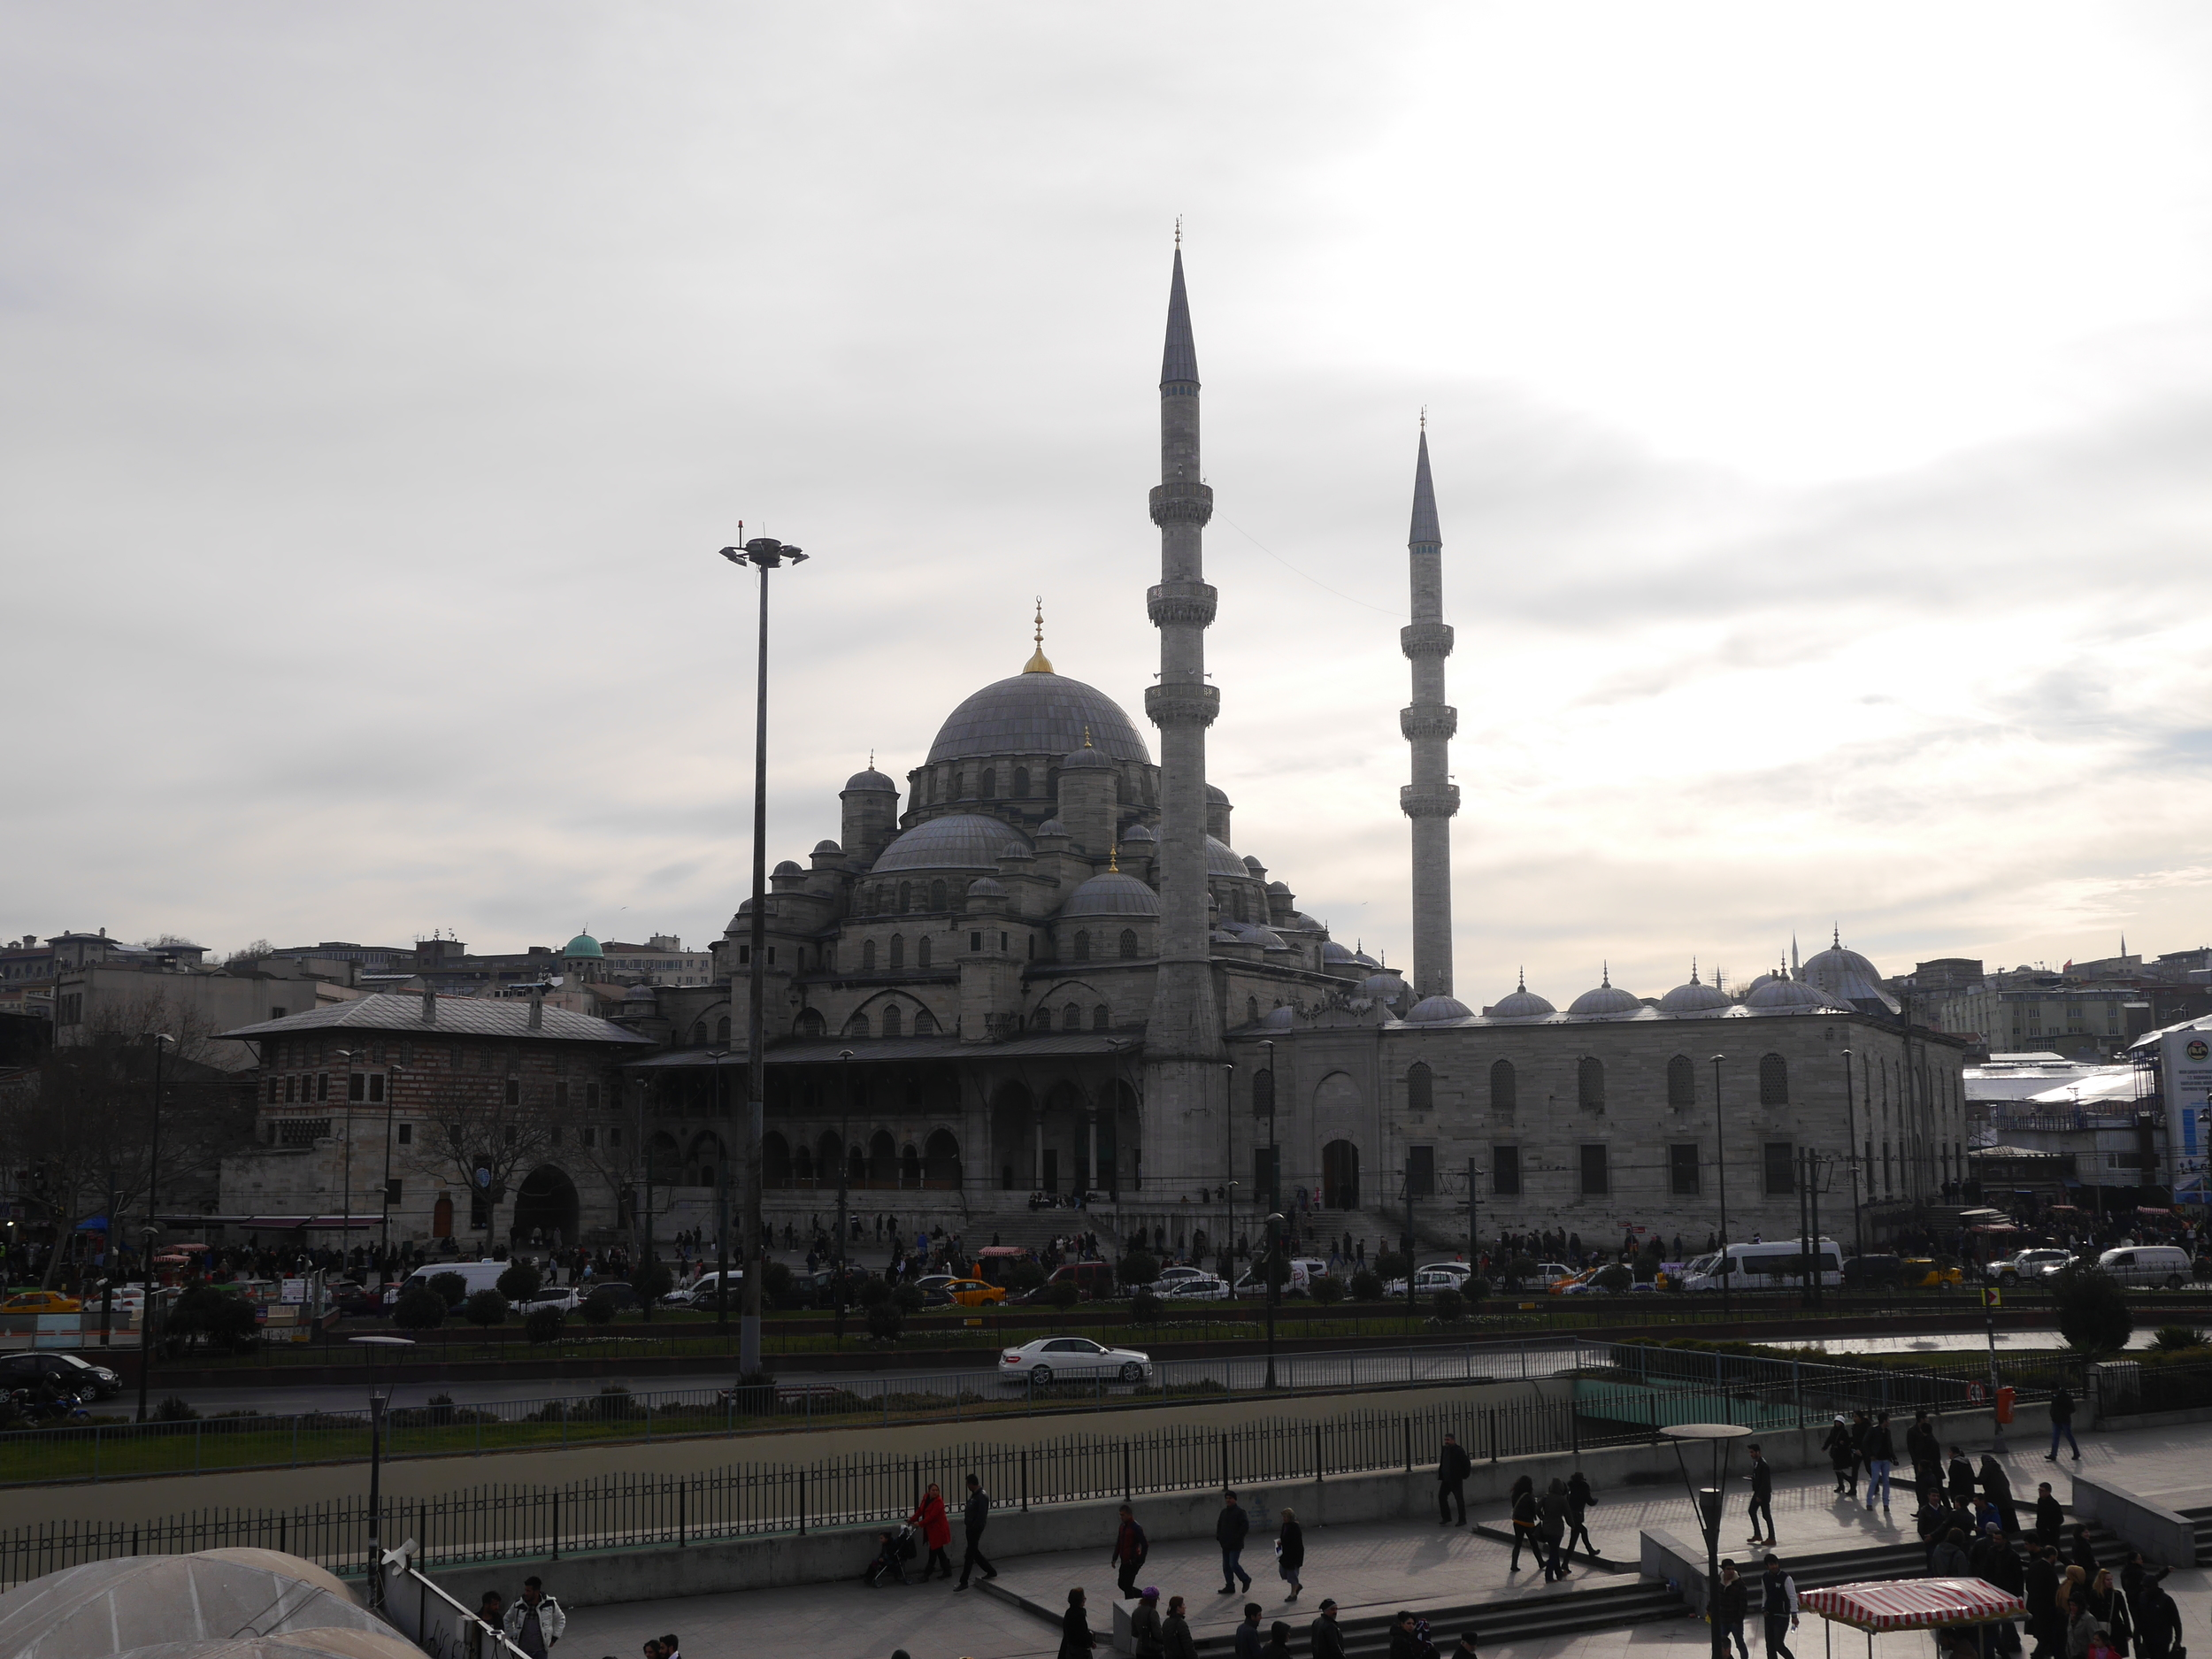 The  Yeni Cami (New Mosque) , as seen from aboard the ferry.